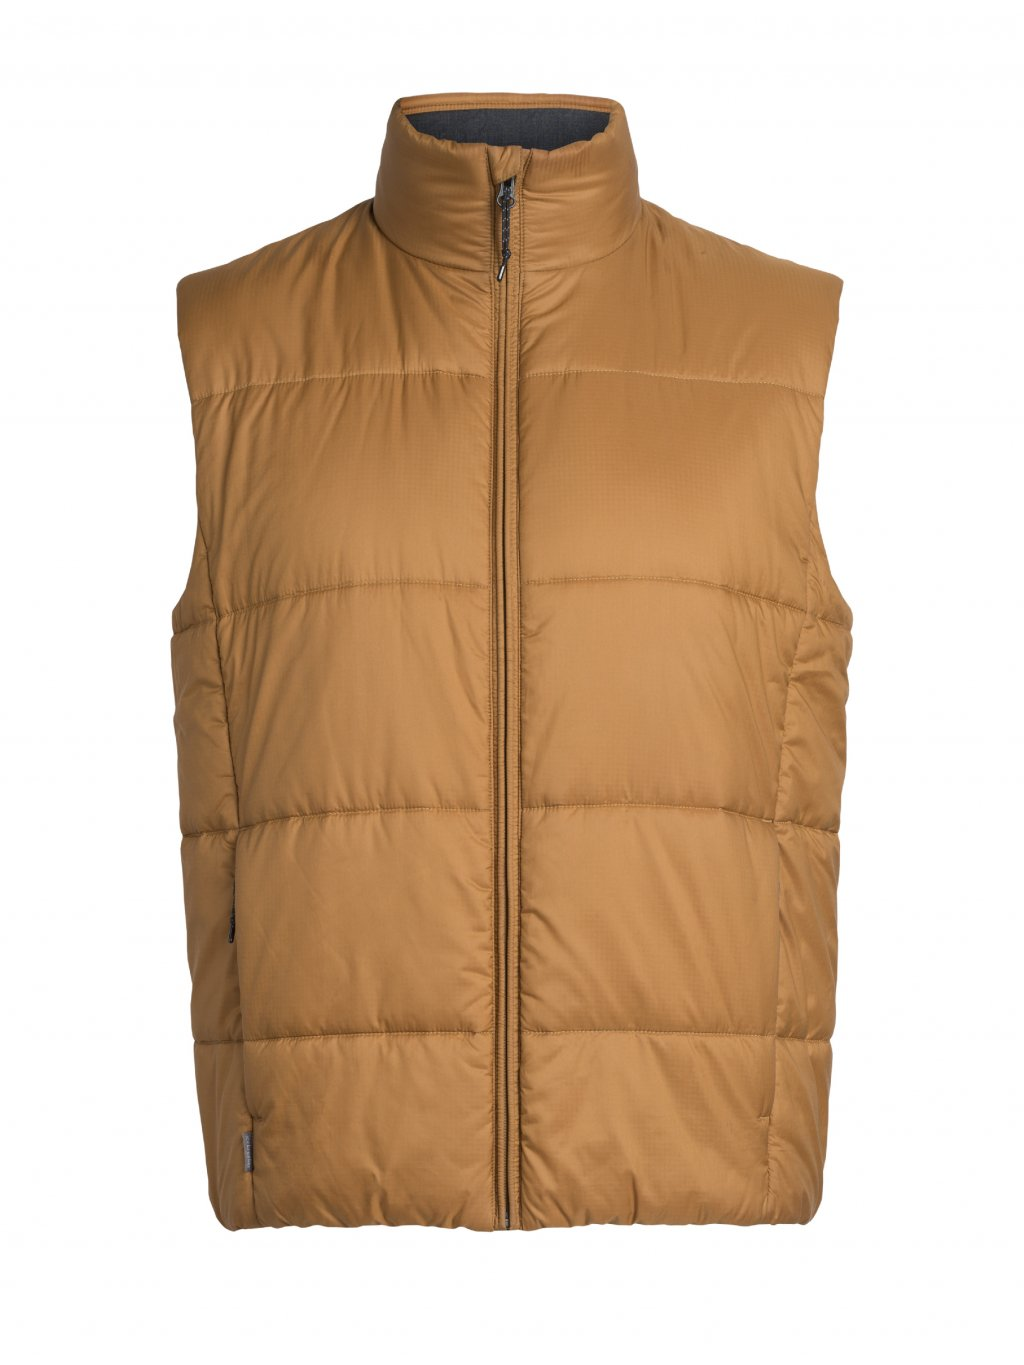 FW19 LIFE MEN COLLINGWOOD VEST 104753211 1